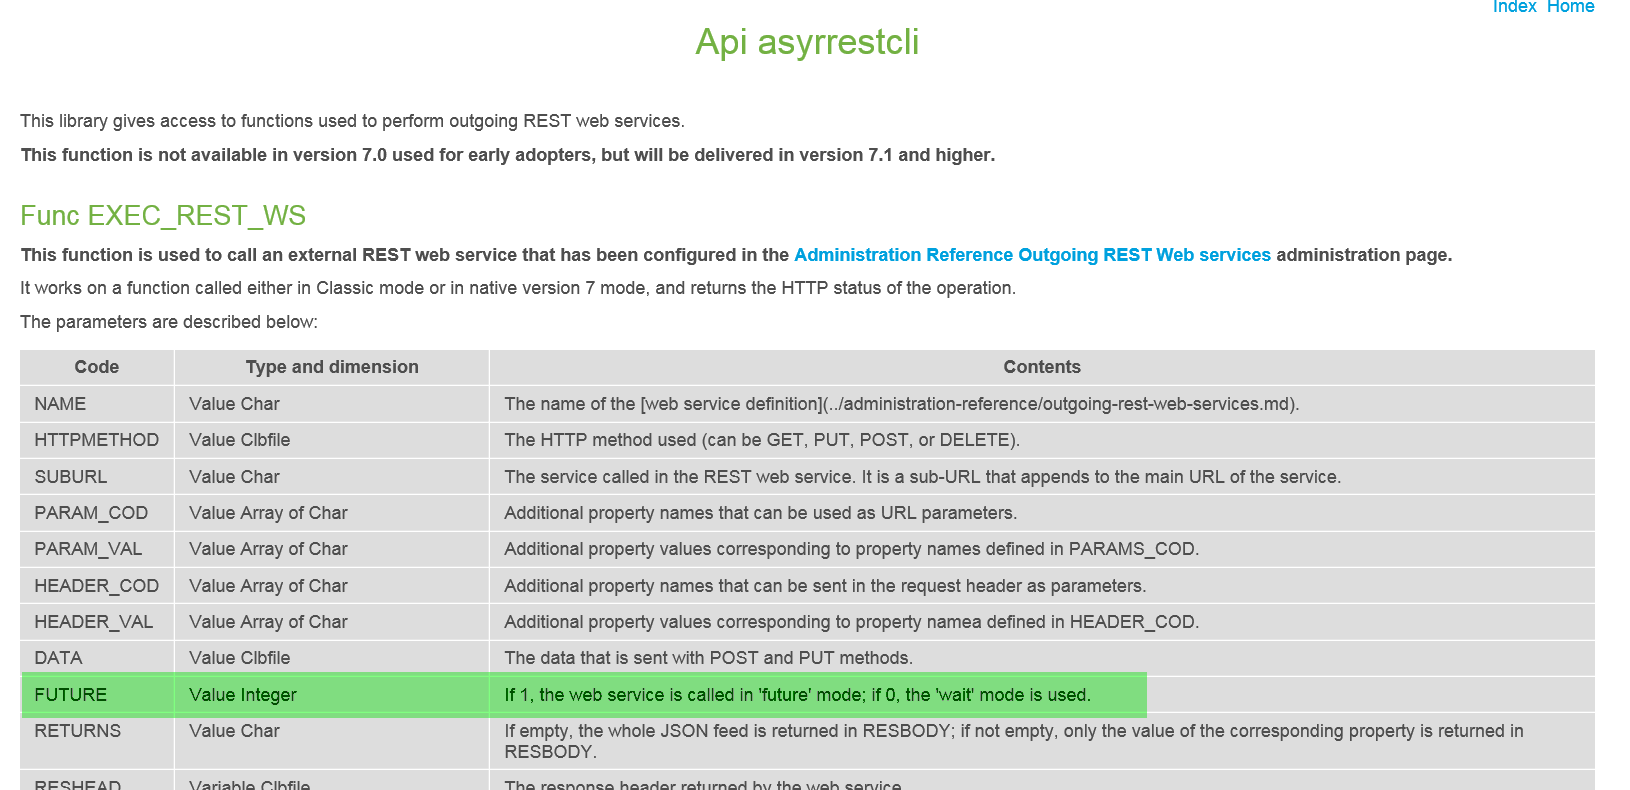 How to call an external REST web services in classic